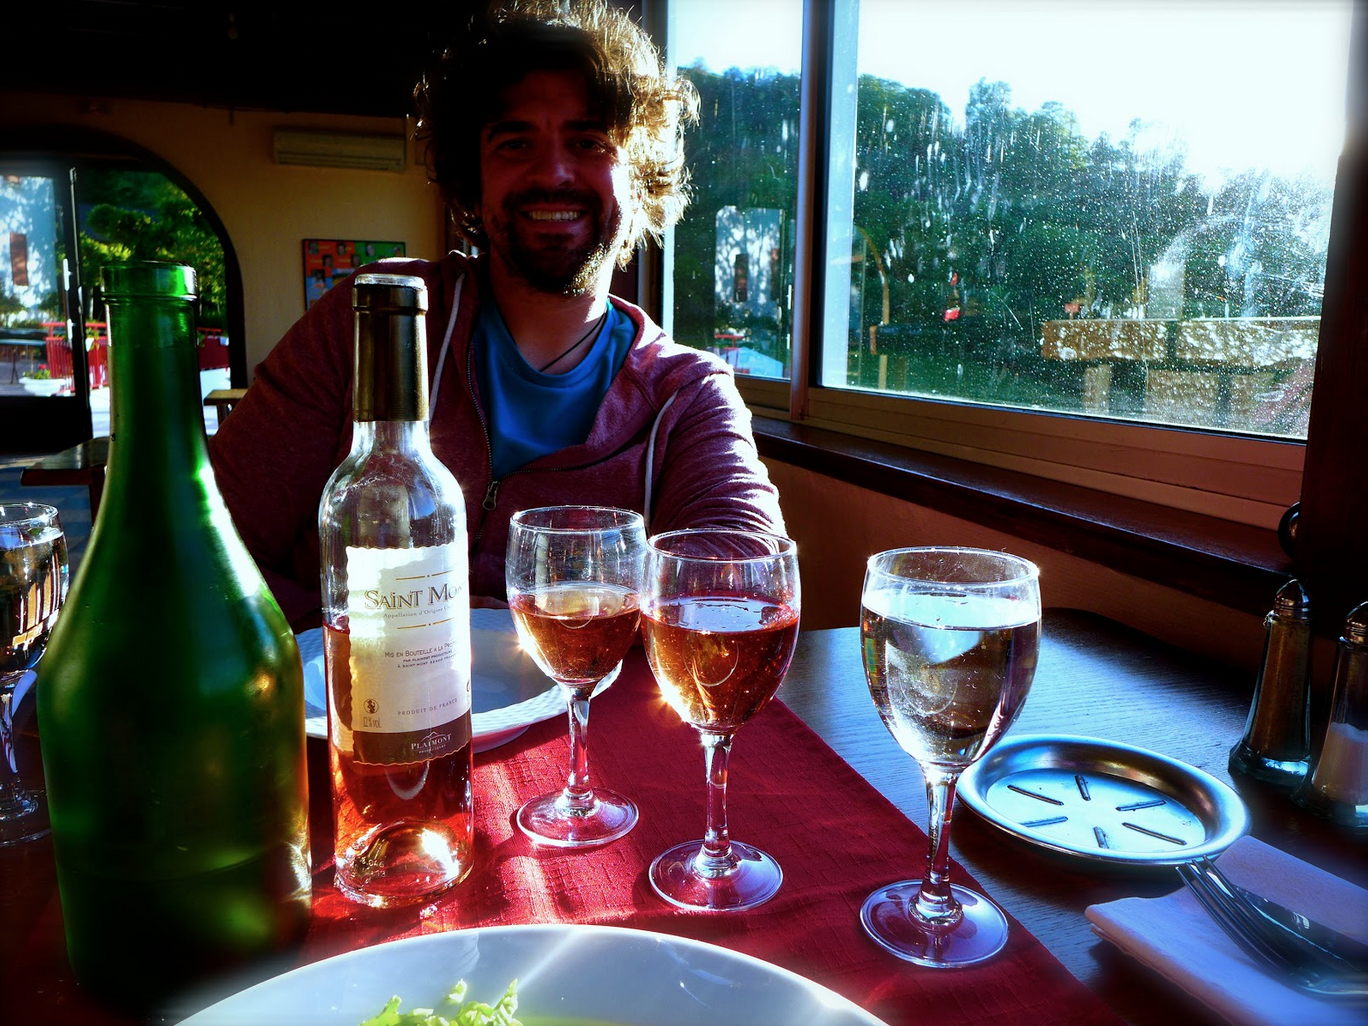 And we treated ourselves to a very nice dinner with a view worth a million Euros.